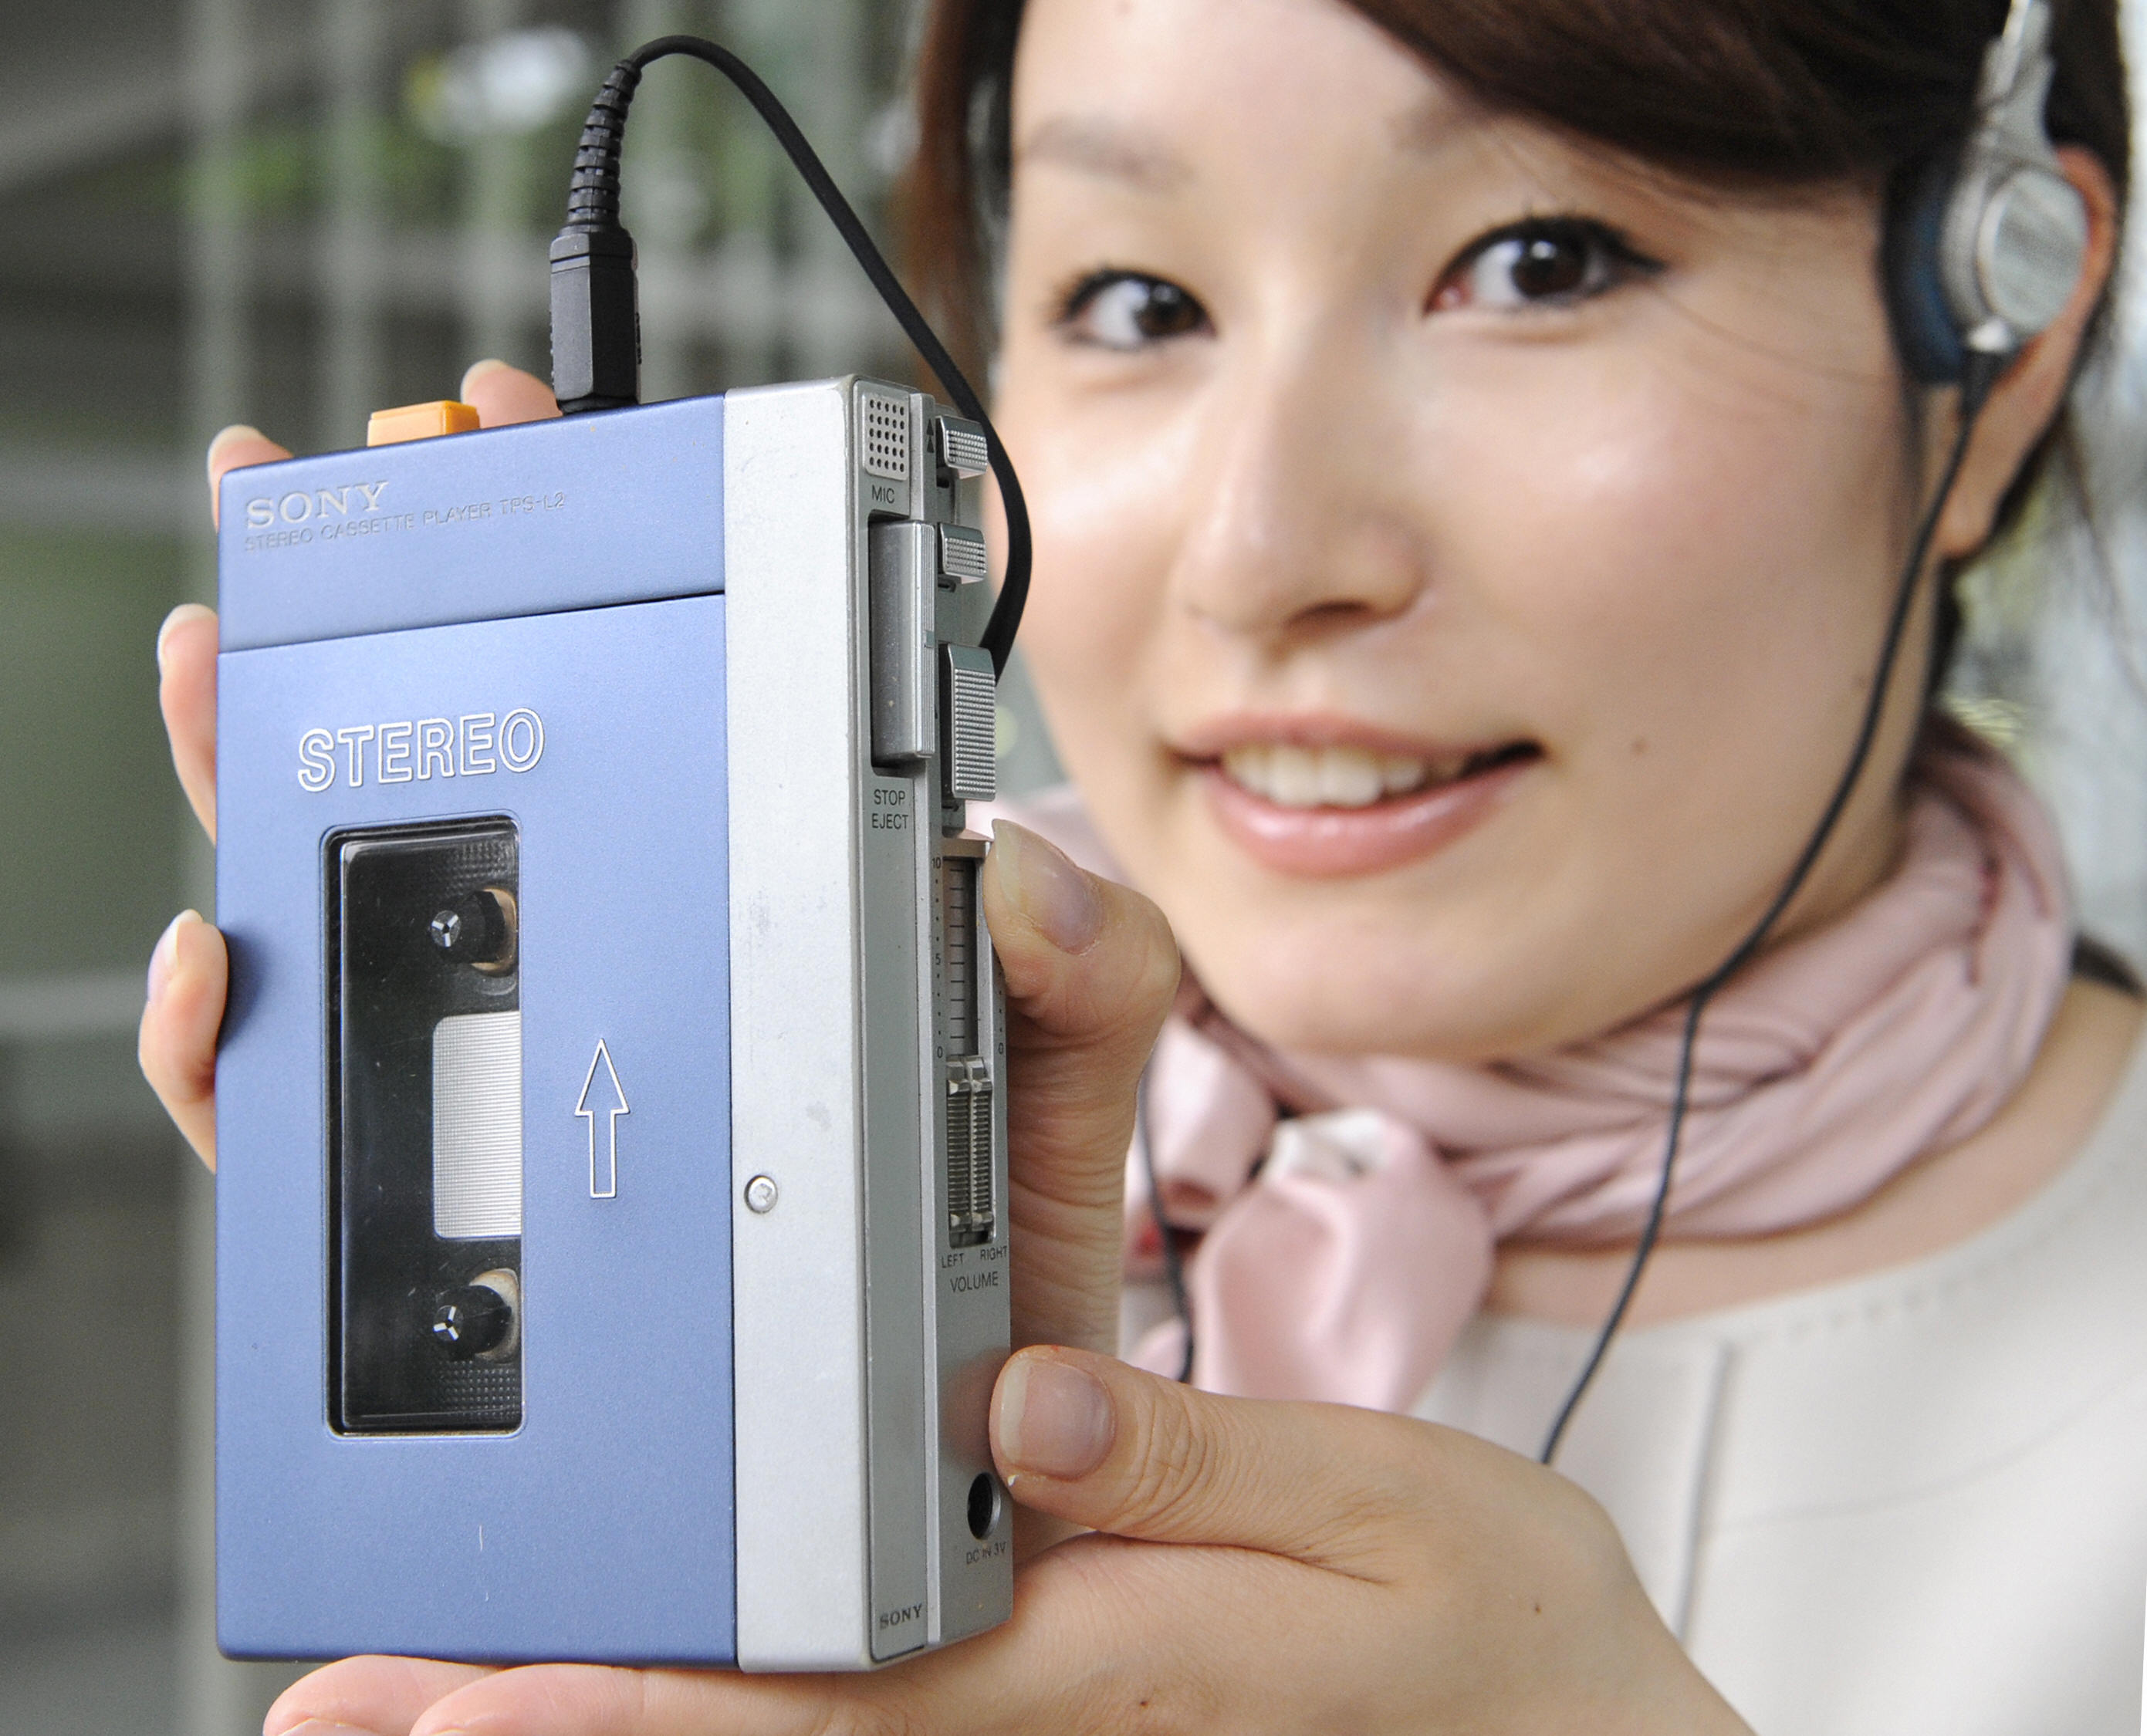 Share your favorite memories of the original Walkman